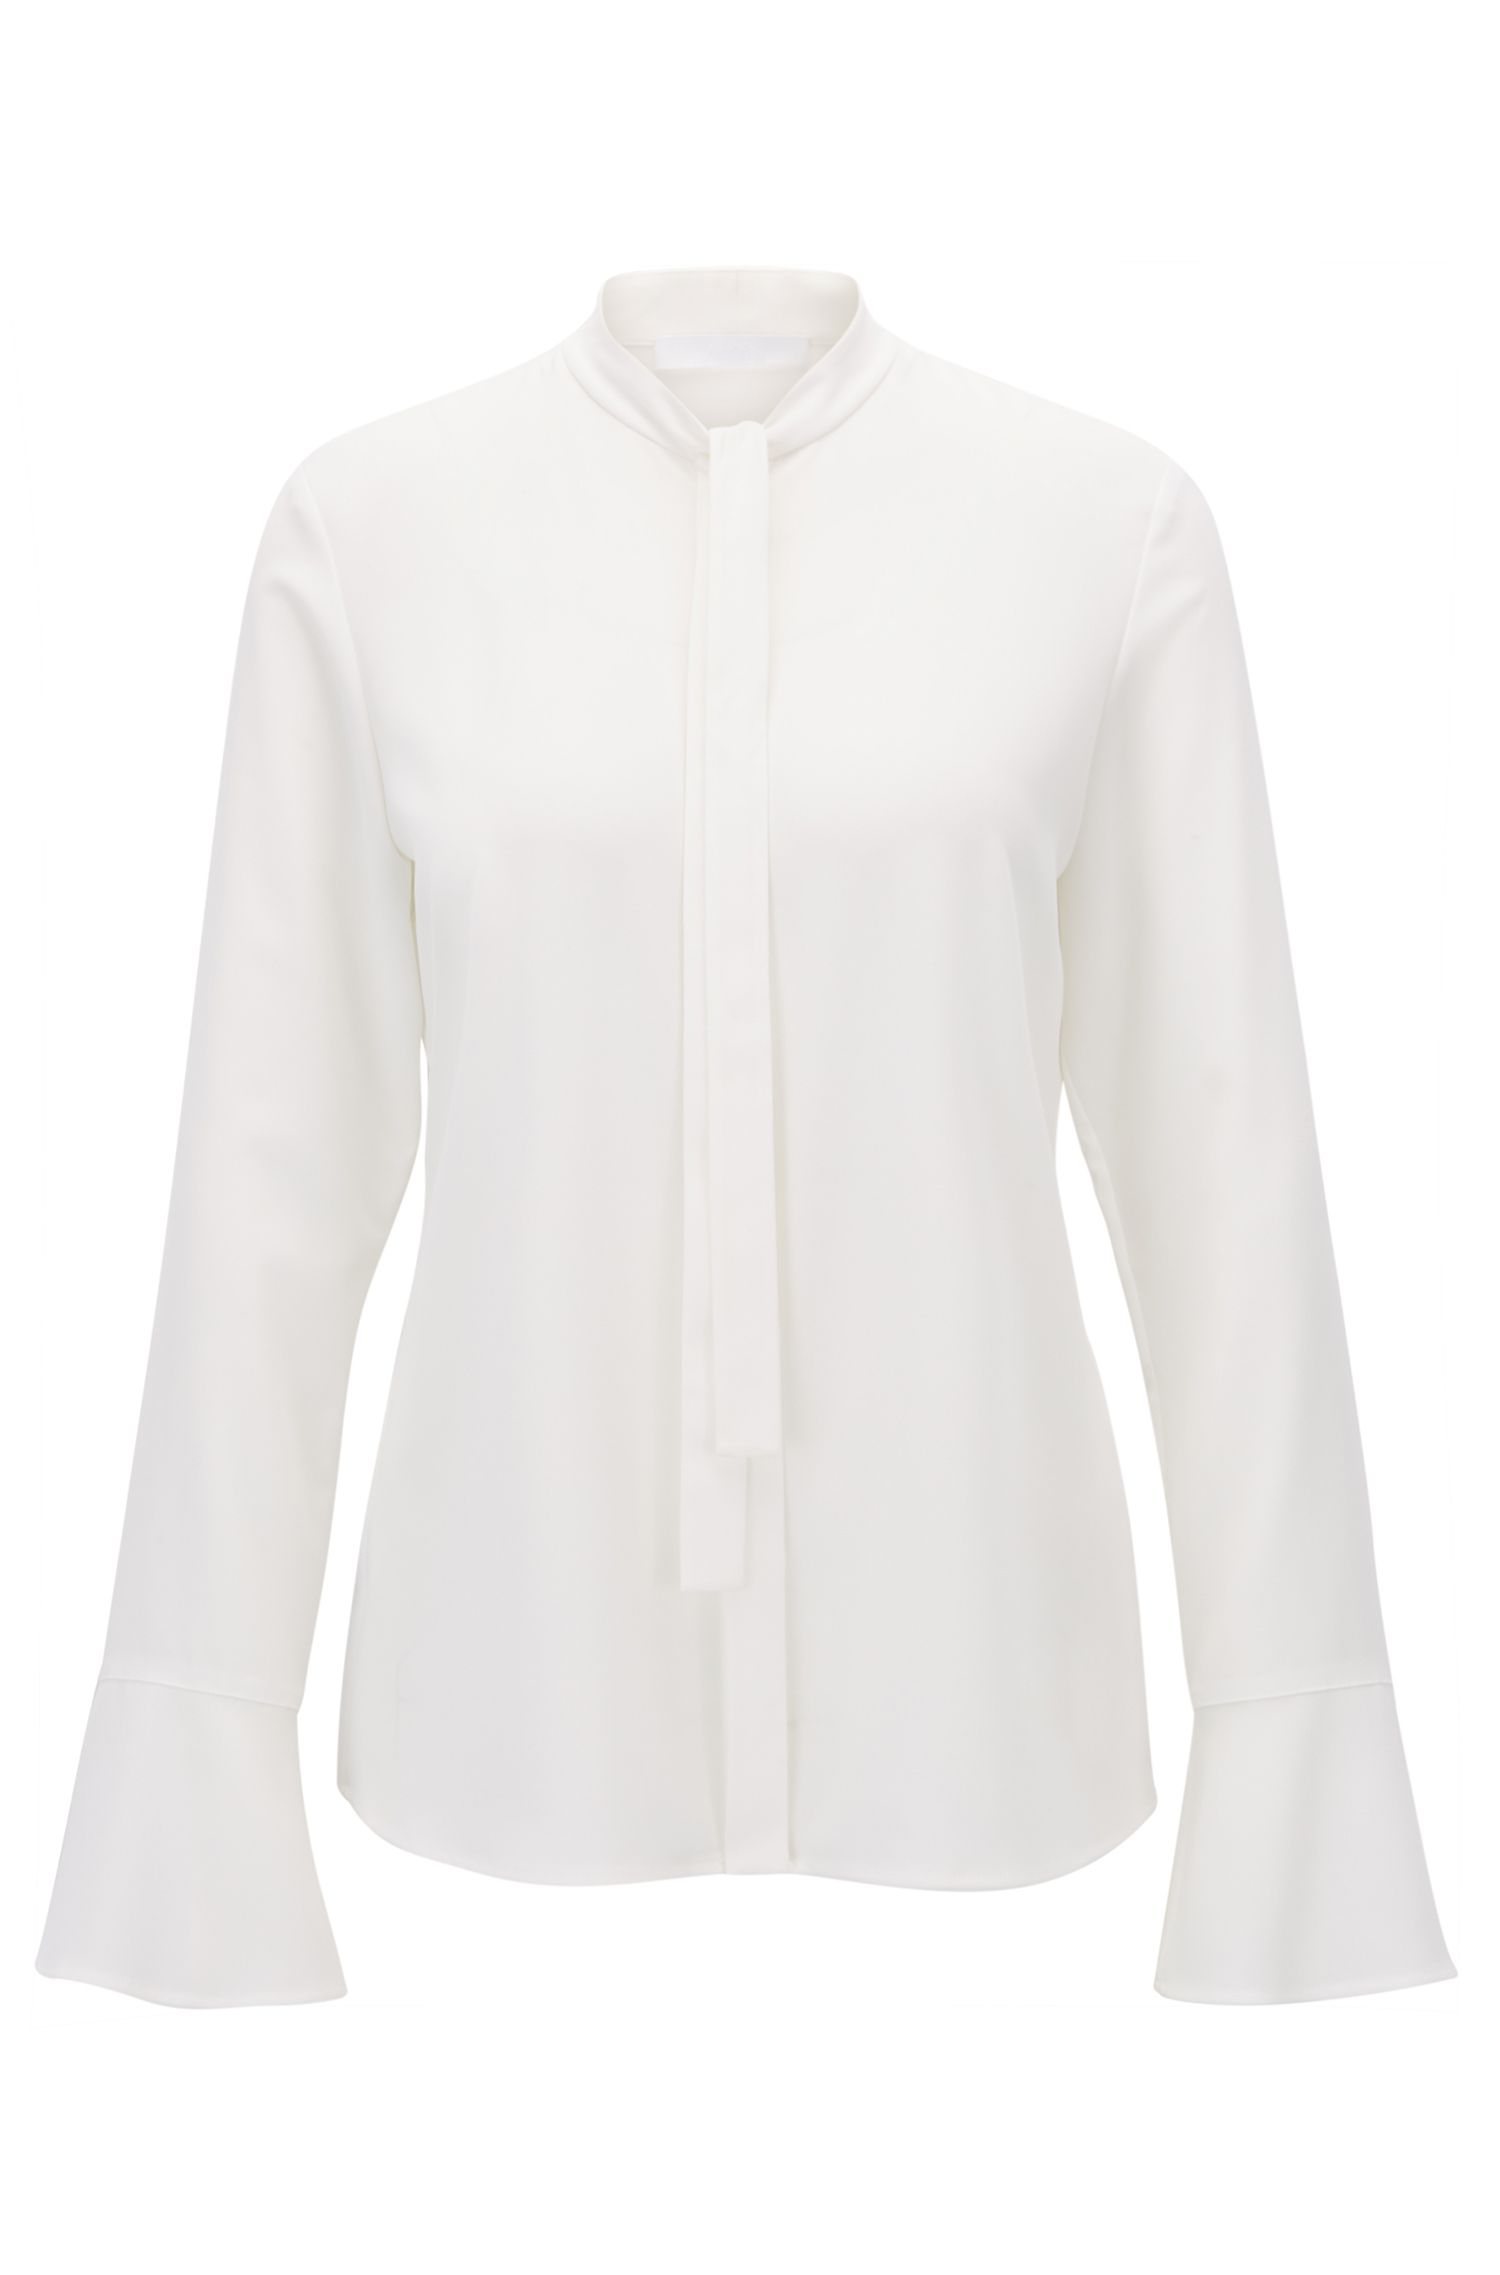 Bow-collar blouse in stretch crinkled crepe